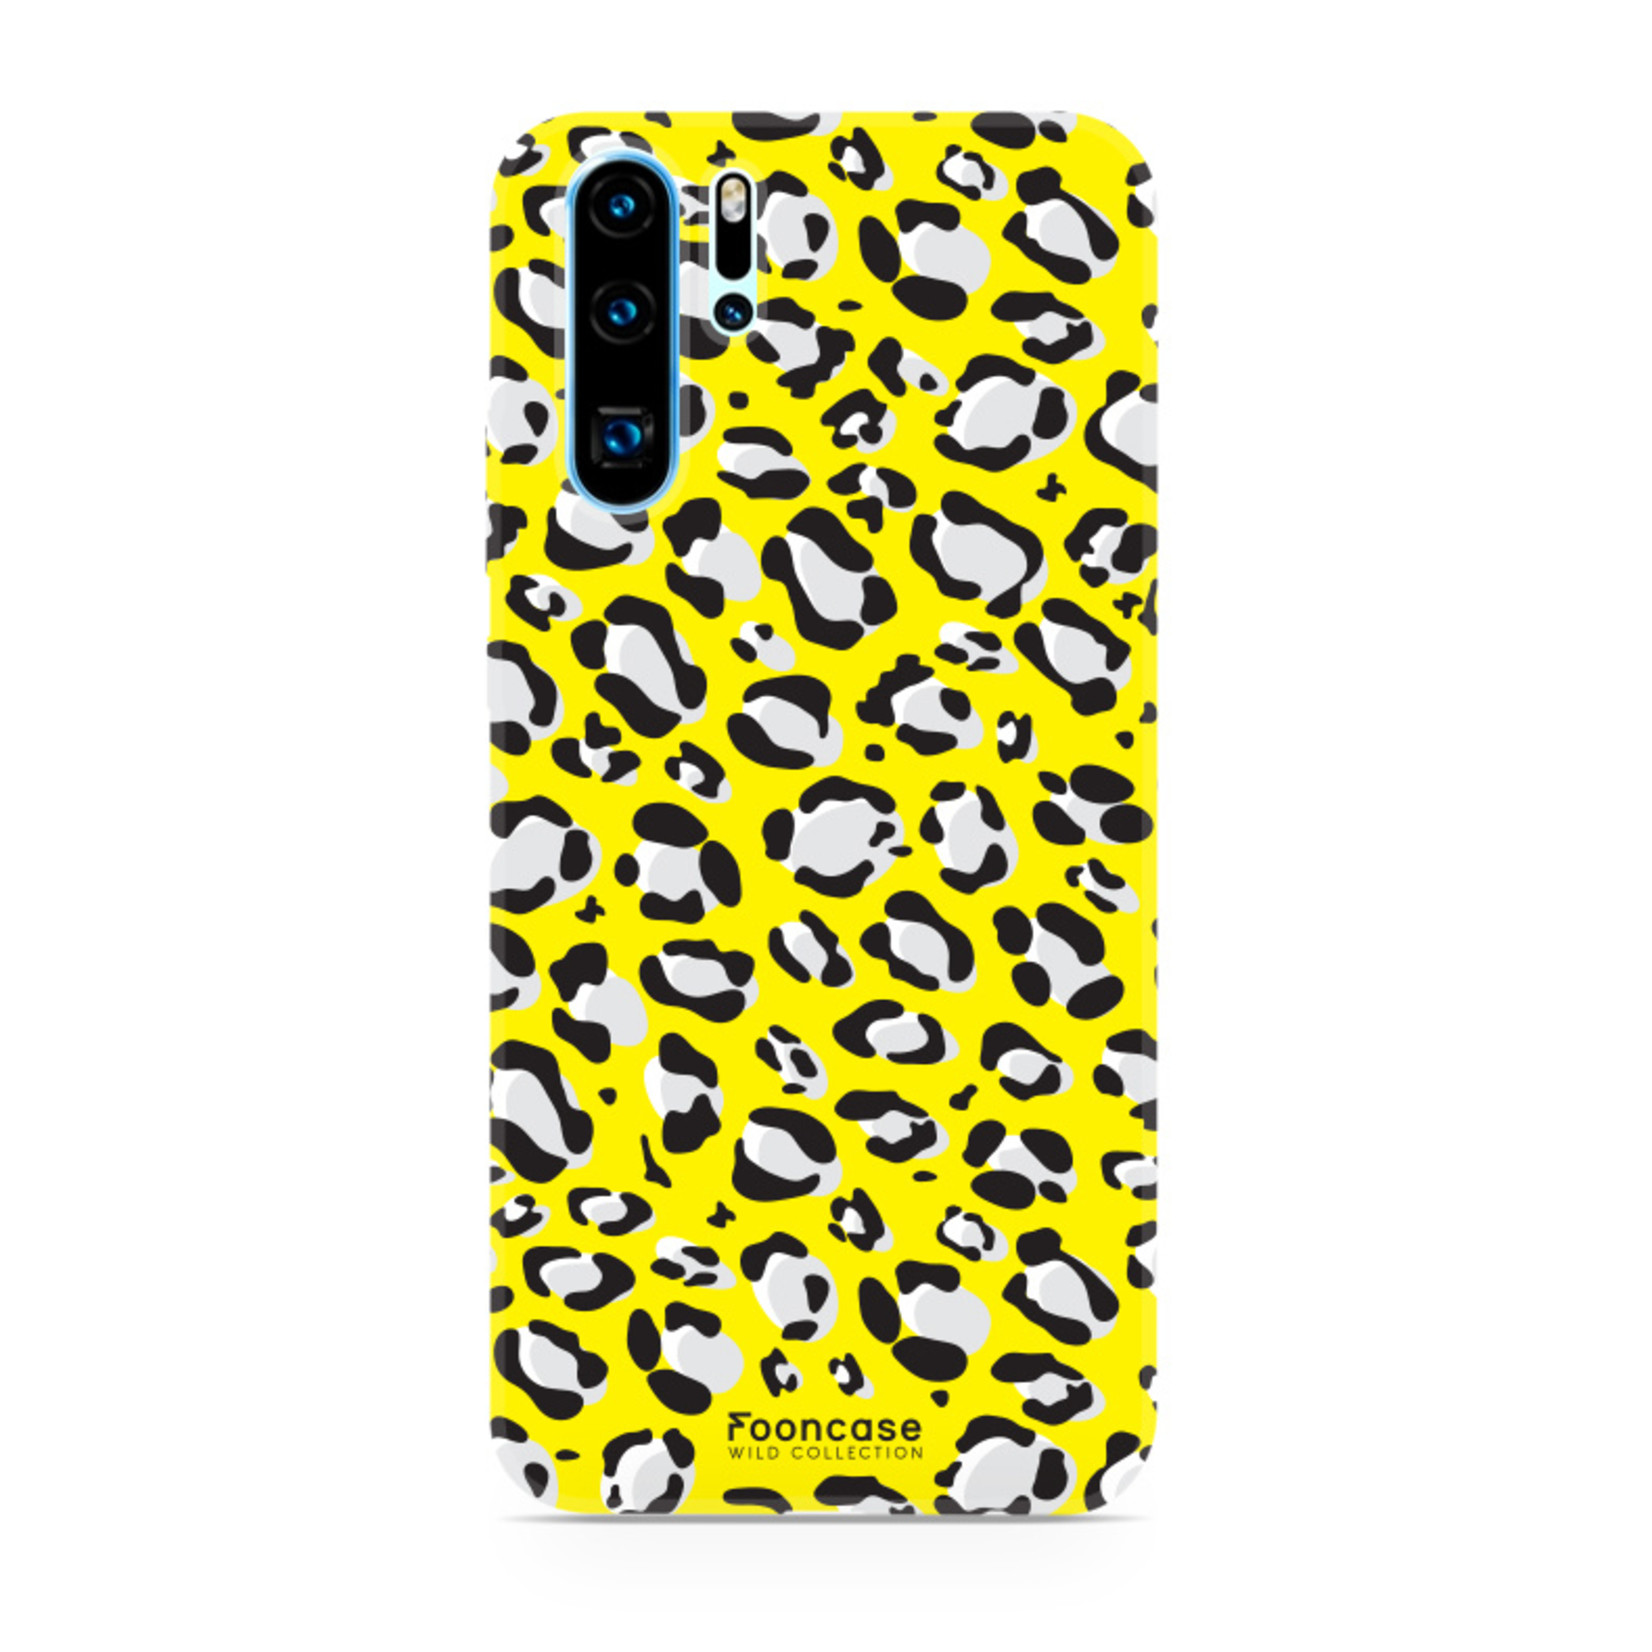 FOONCASE Huawei P30 Pro - WILD COLLECTION / Gelb